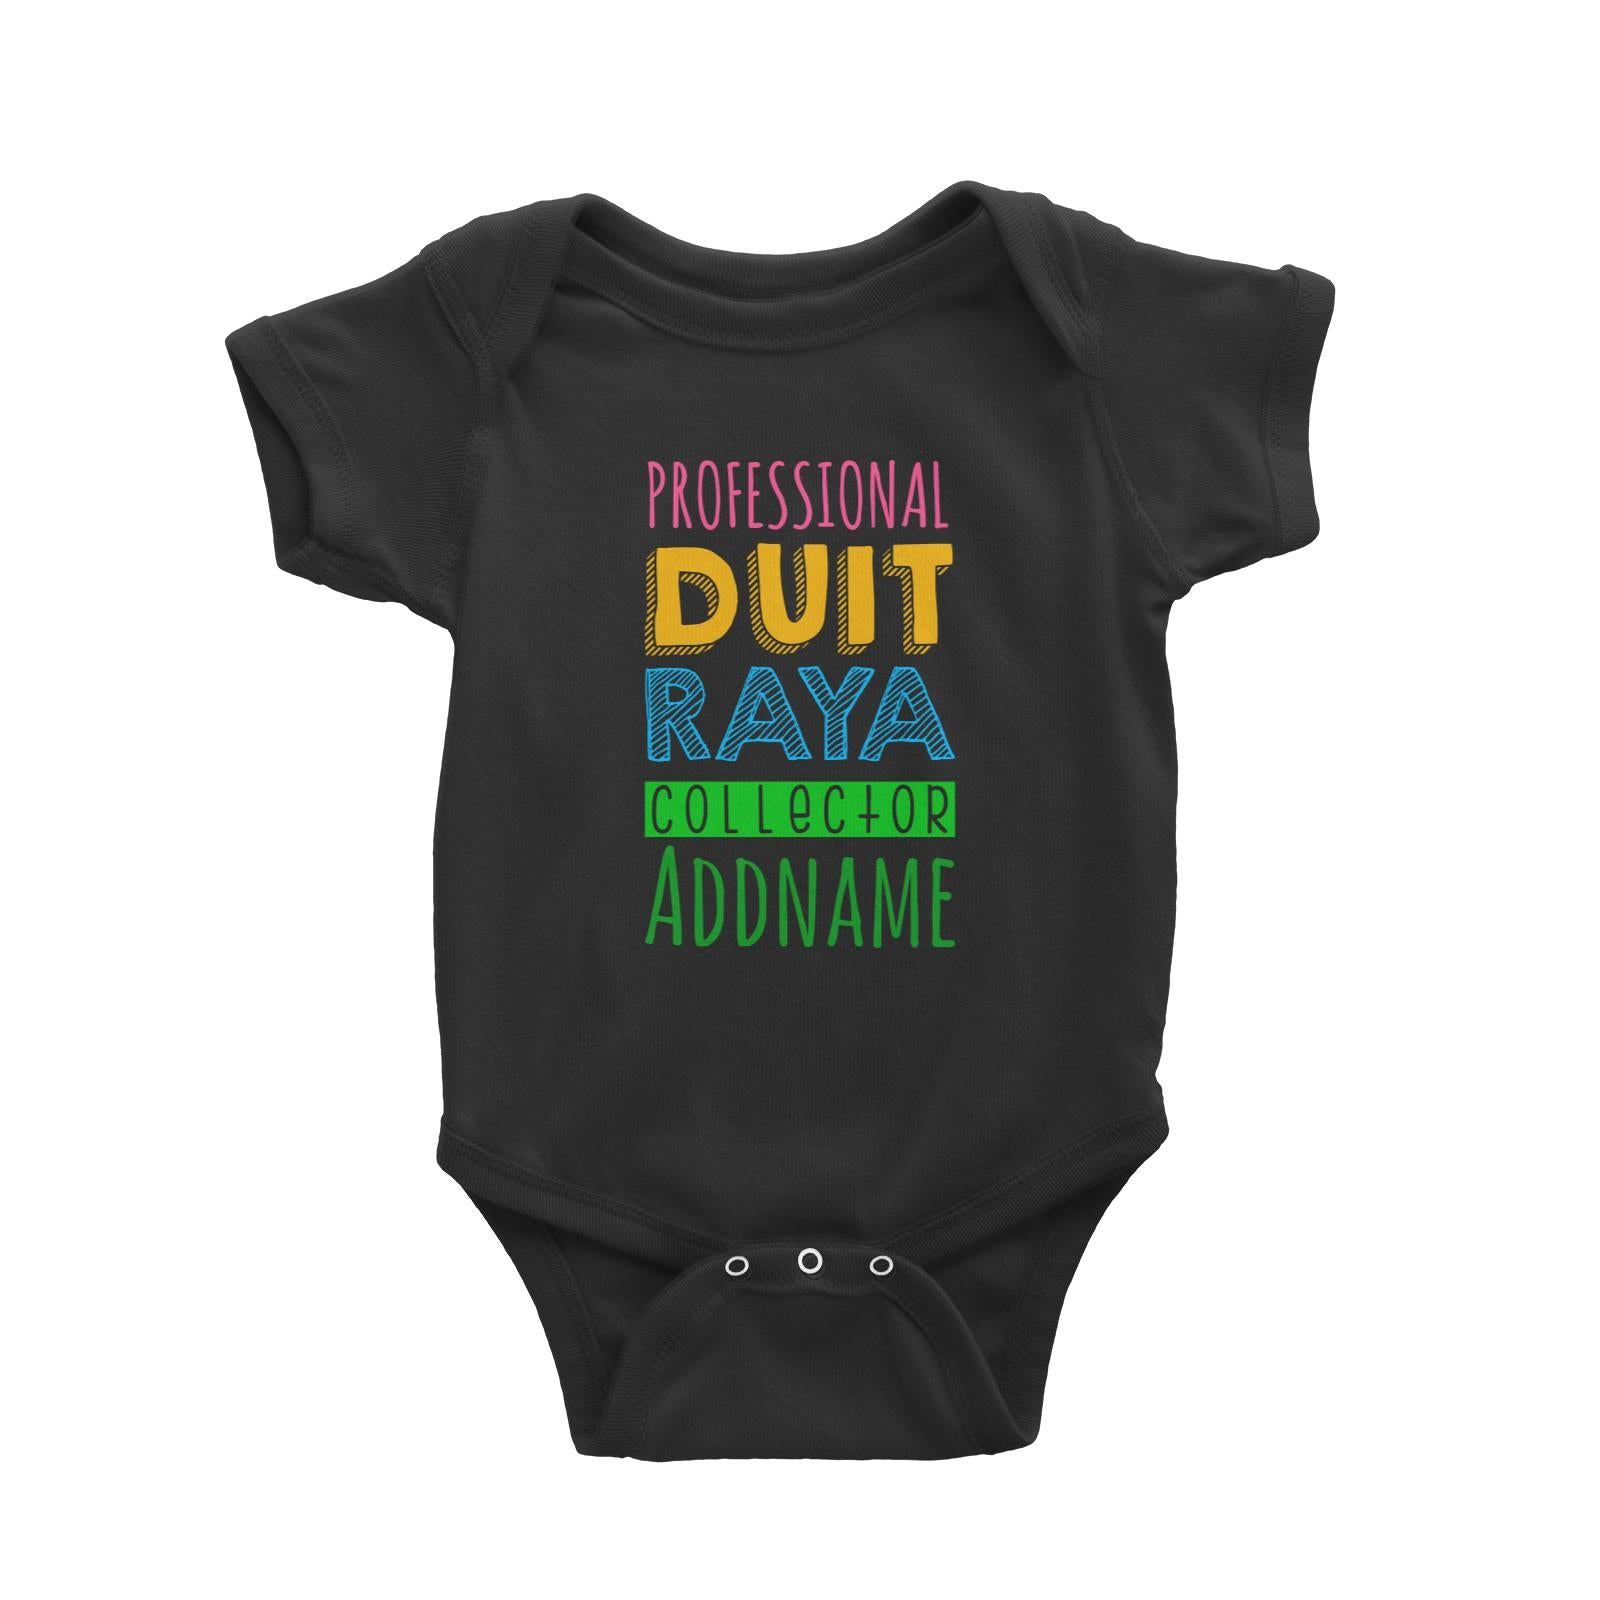 Professional Duit Raya Collector Baby Romper  Personalizable Designs